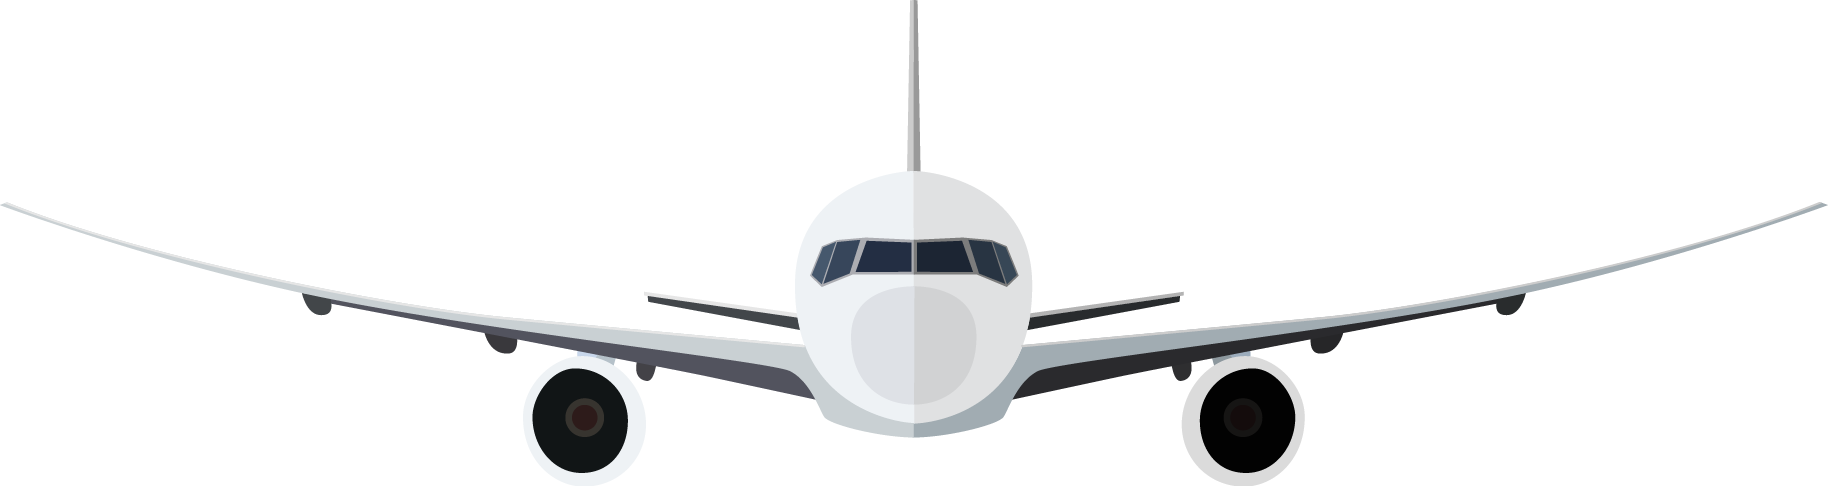 1828x486 Airplane Clipart Front View